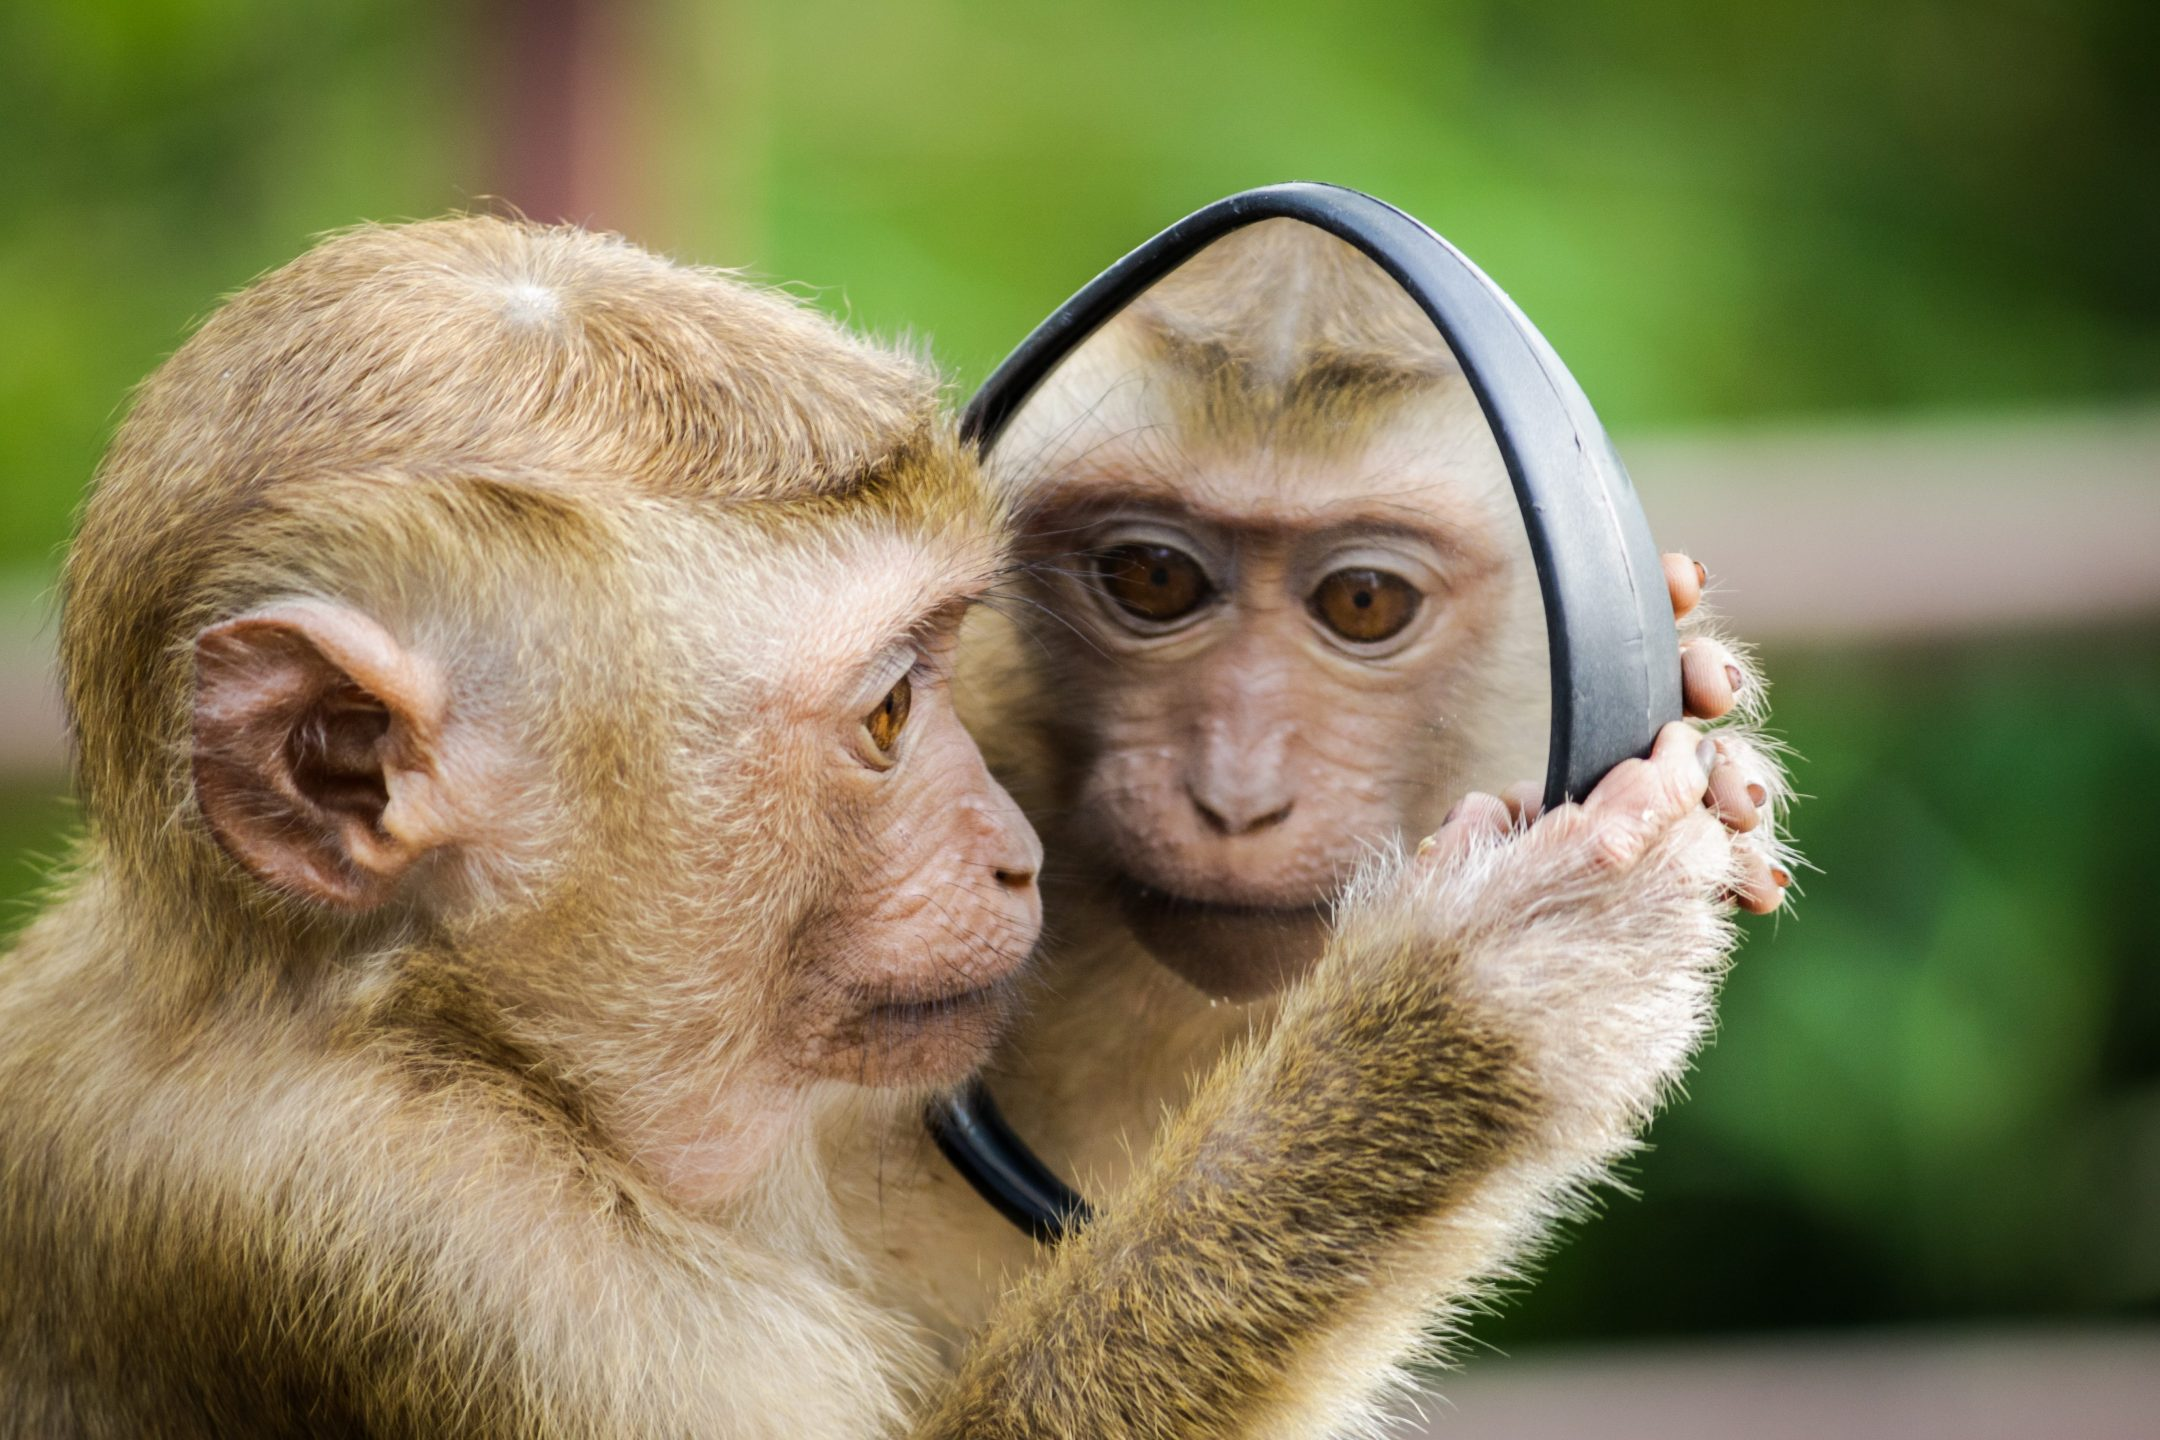 monkey mirror self